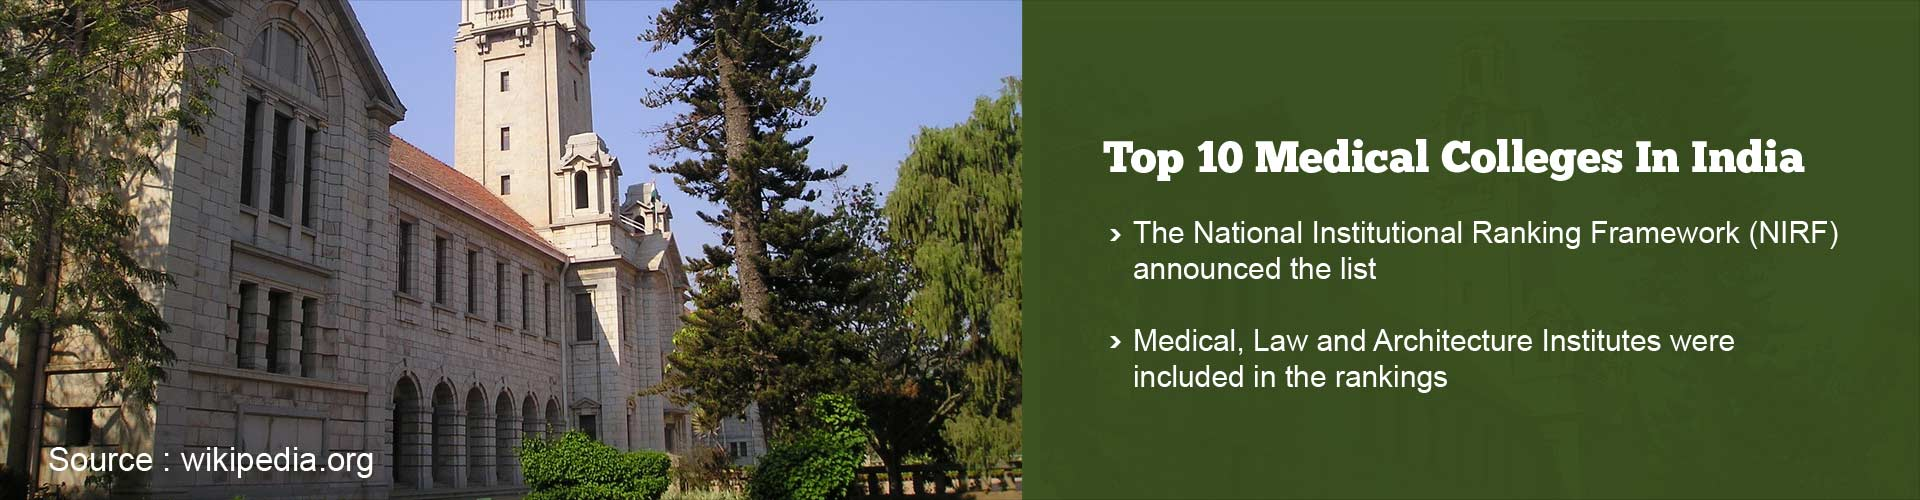 Top 10 Medical Colleges in India as by Ranked Human Resource Ministry